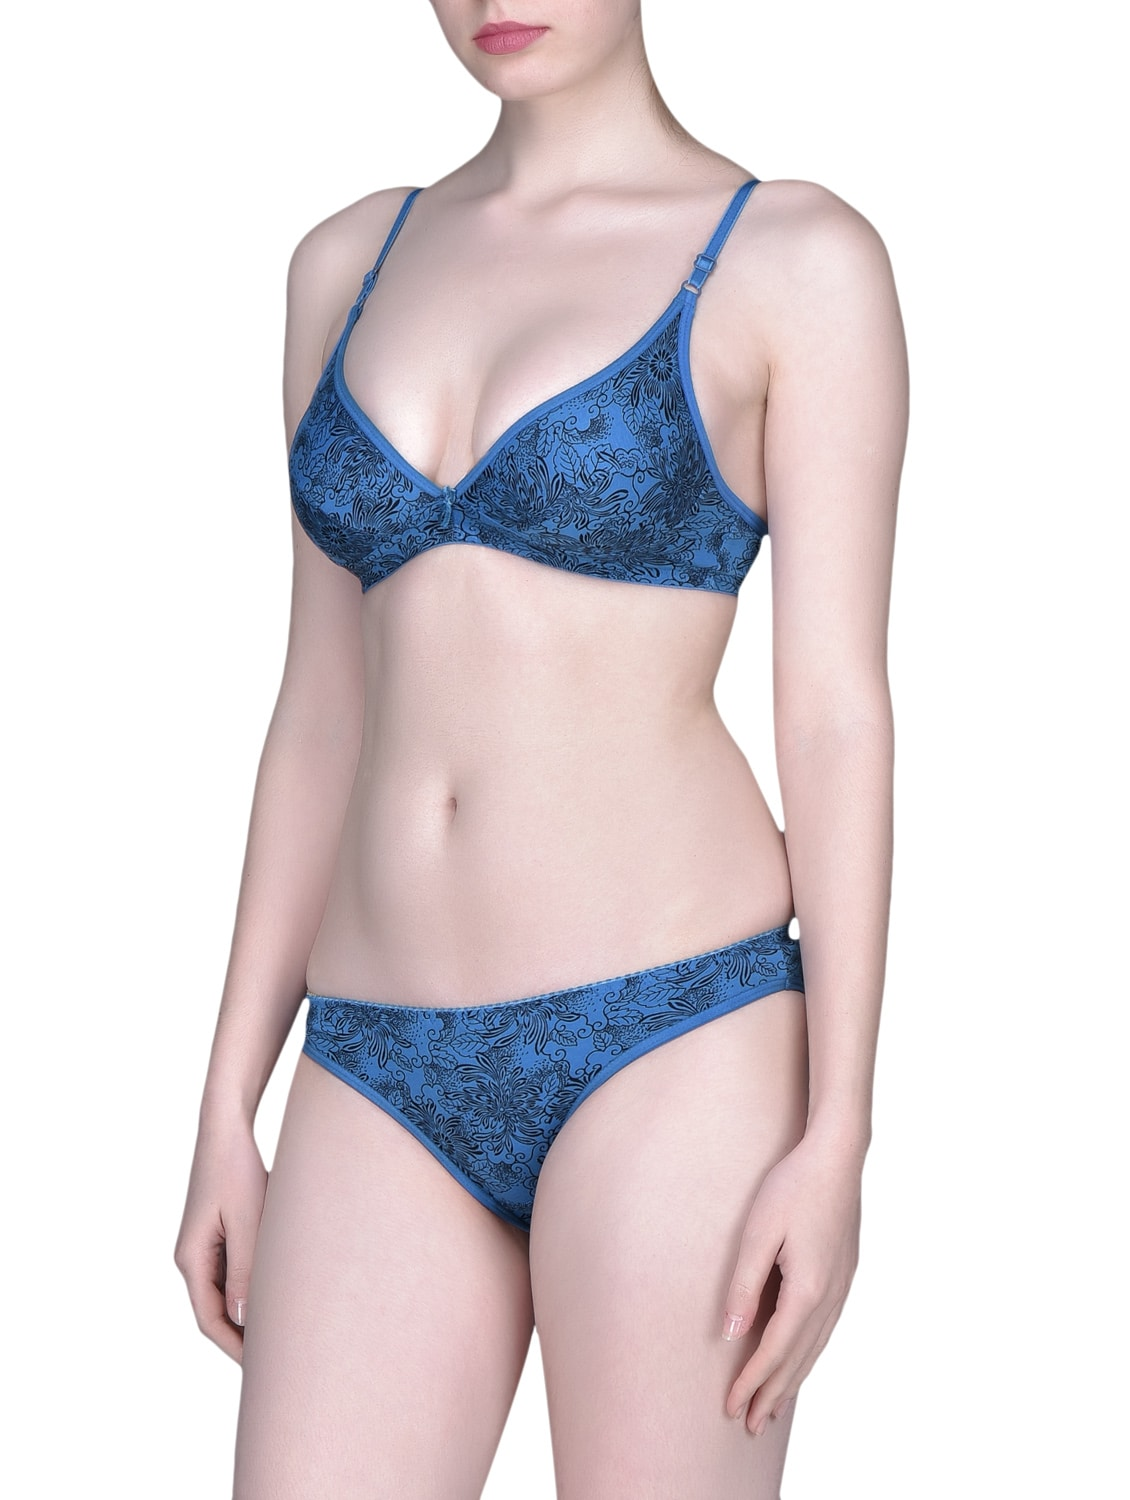 304cd71b113 Buy Blue Floral Bra And Panty Set for Women from Desiharem for ₹640 at 0%  off